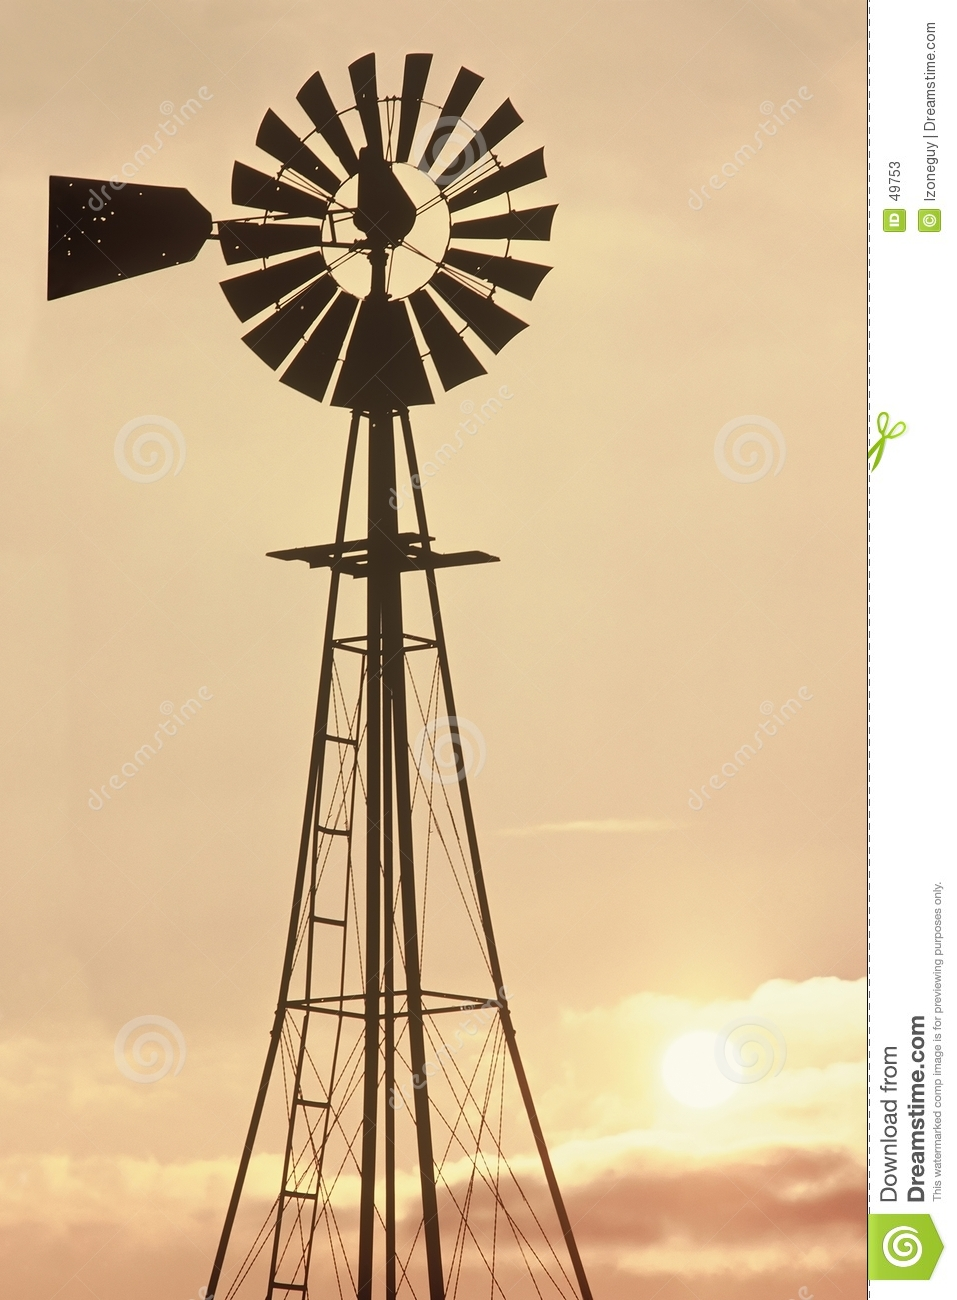 Old Windmill Stock Photos - Image: 49753